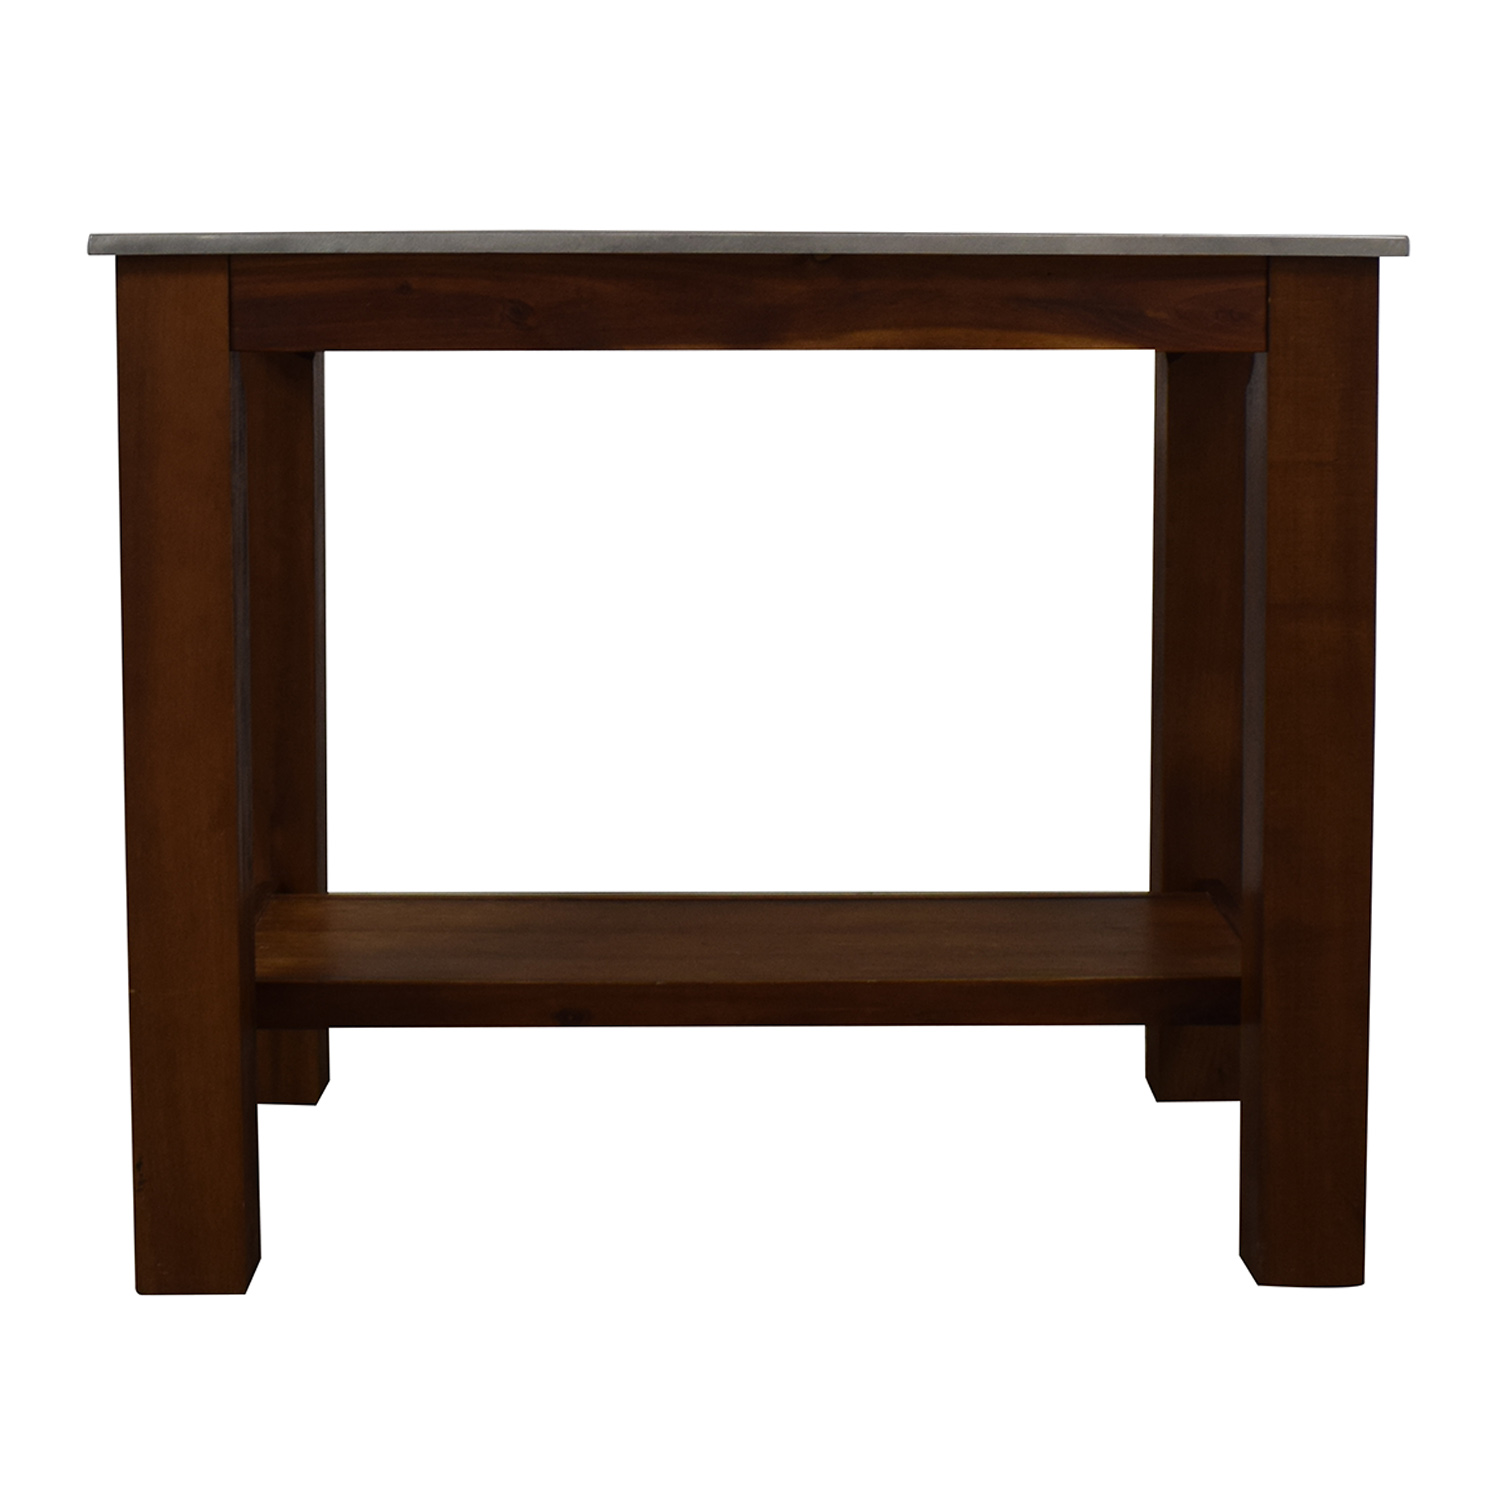 West Elm West Elm Rustic Kitchen Island on sale